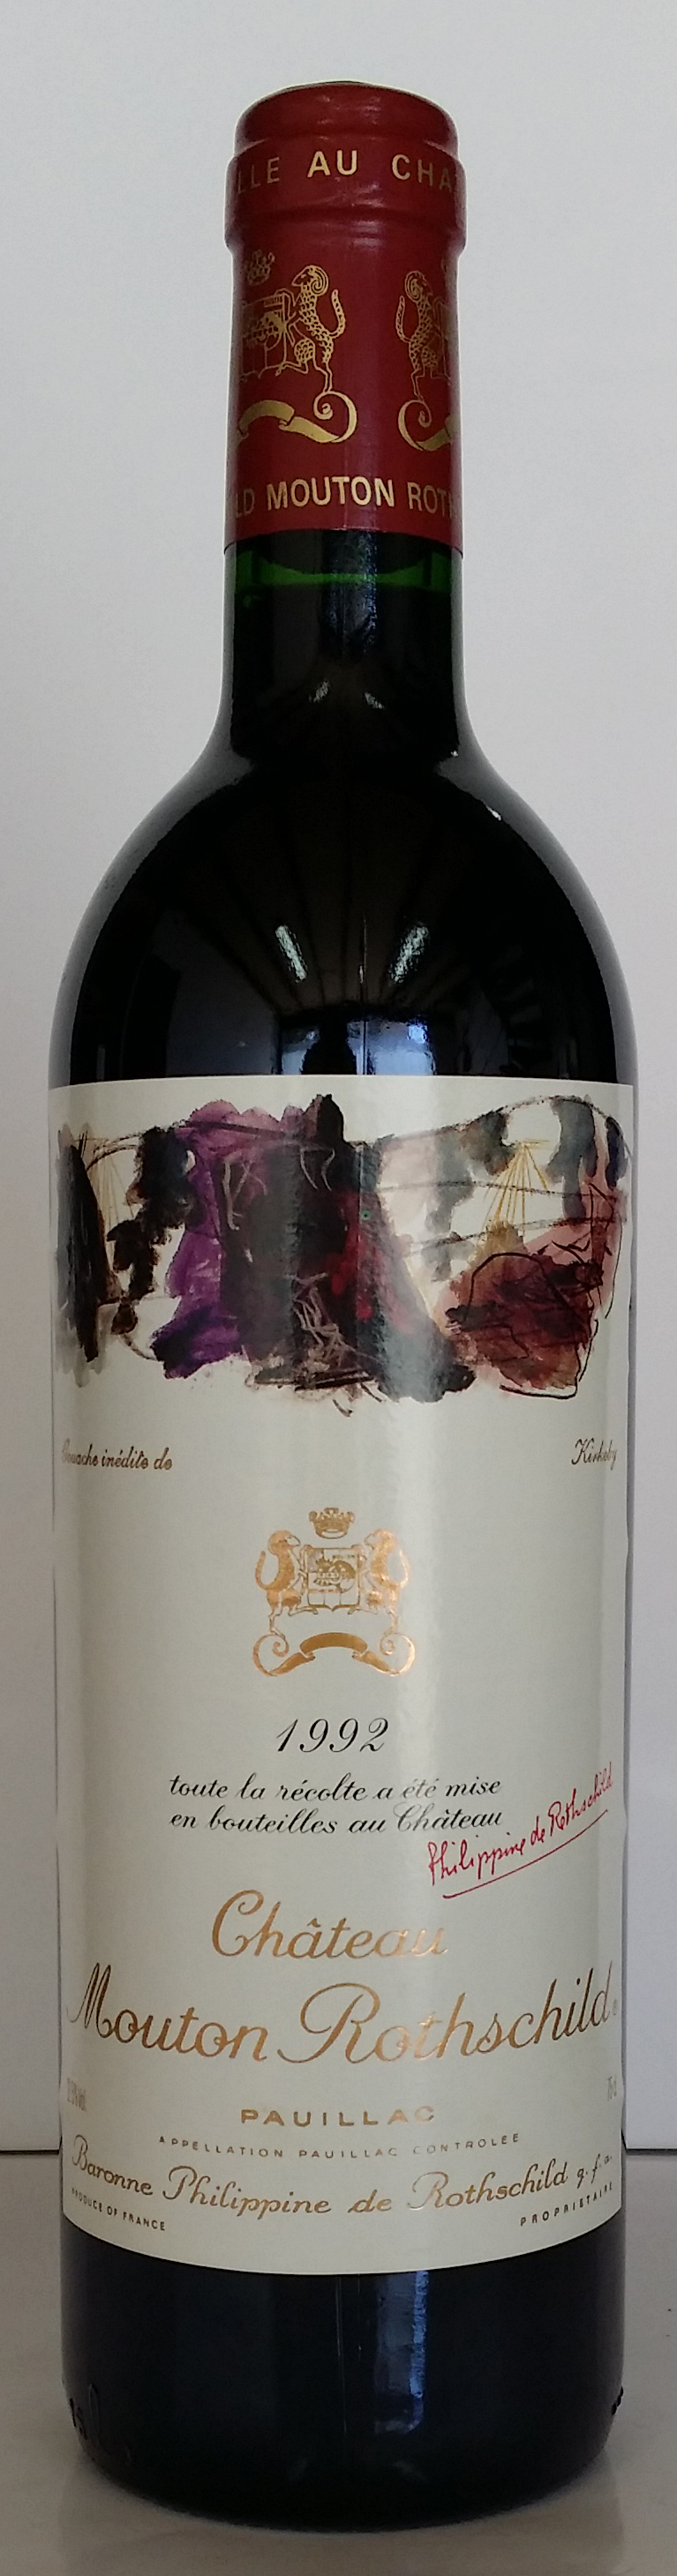 1992 Baron Philippe de Rothschild Chateau Mouton Rothschild